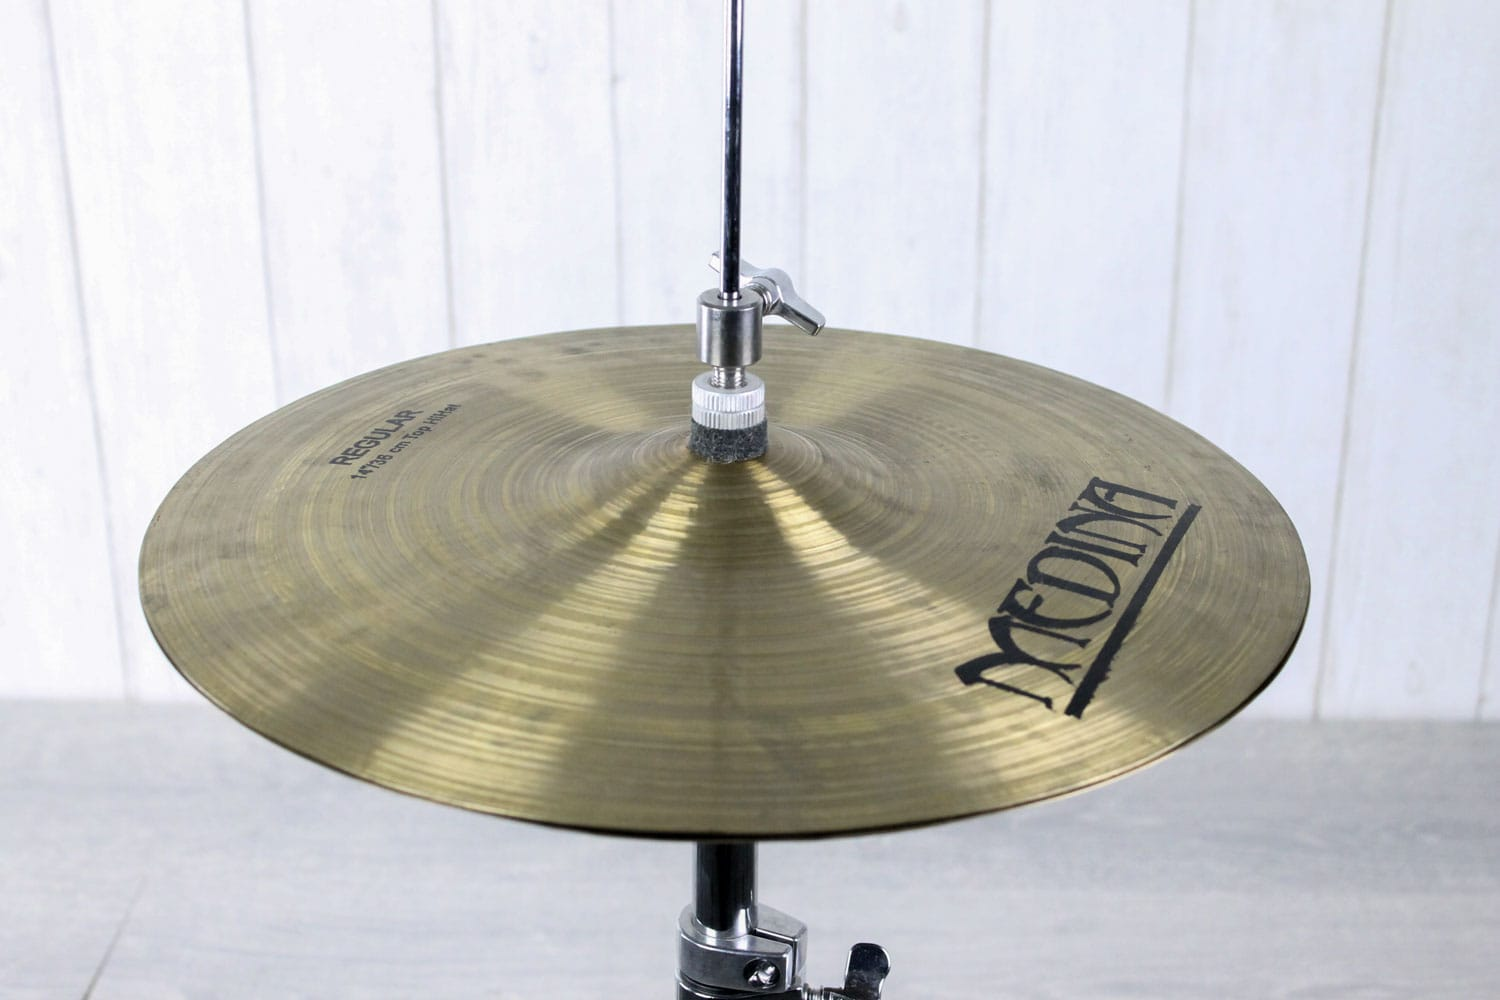 Medina Regular 14'' hihat (5477306728612)